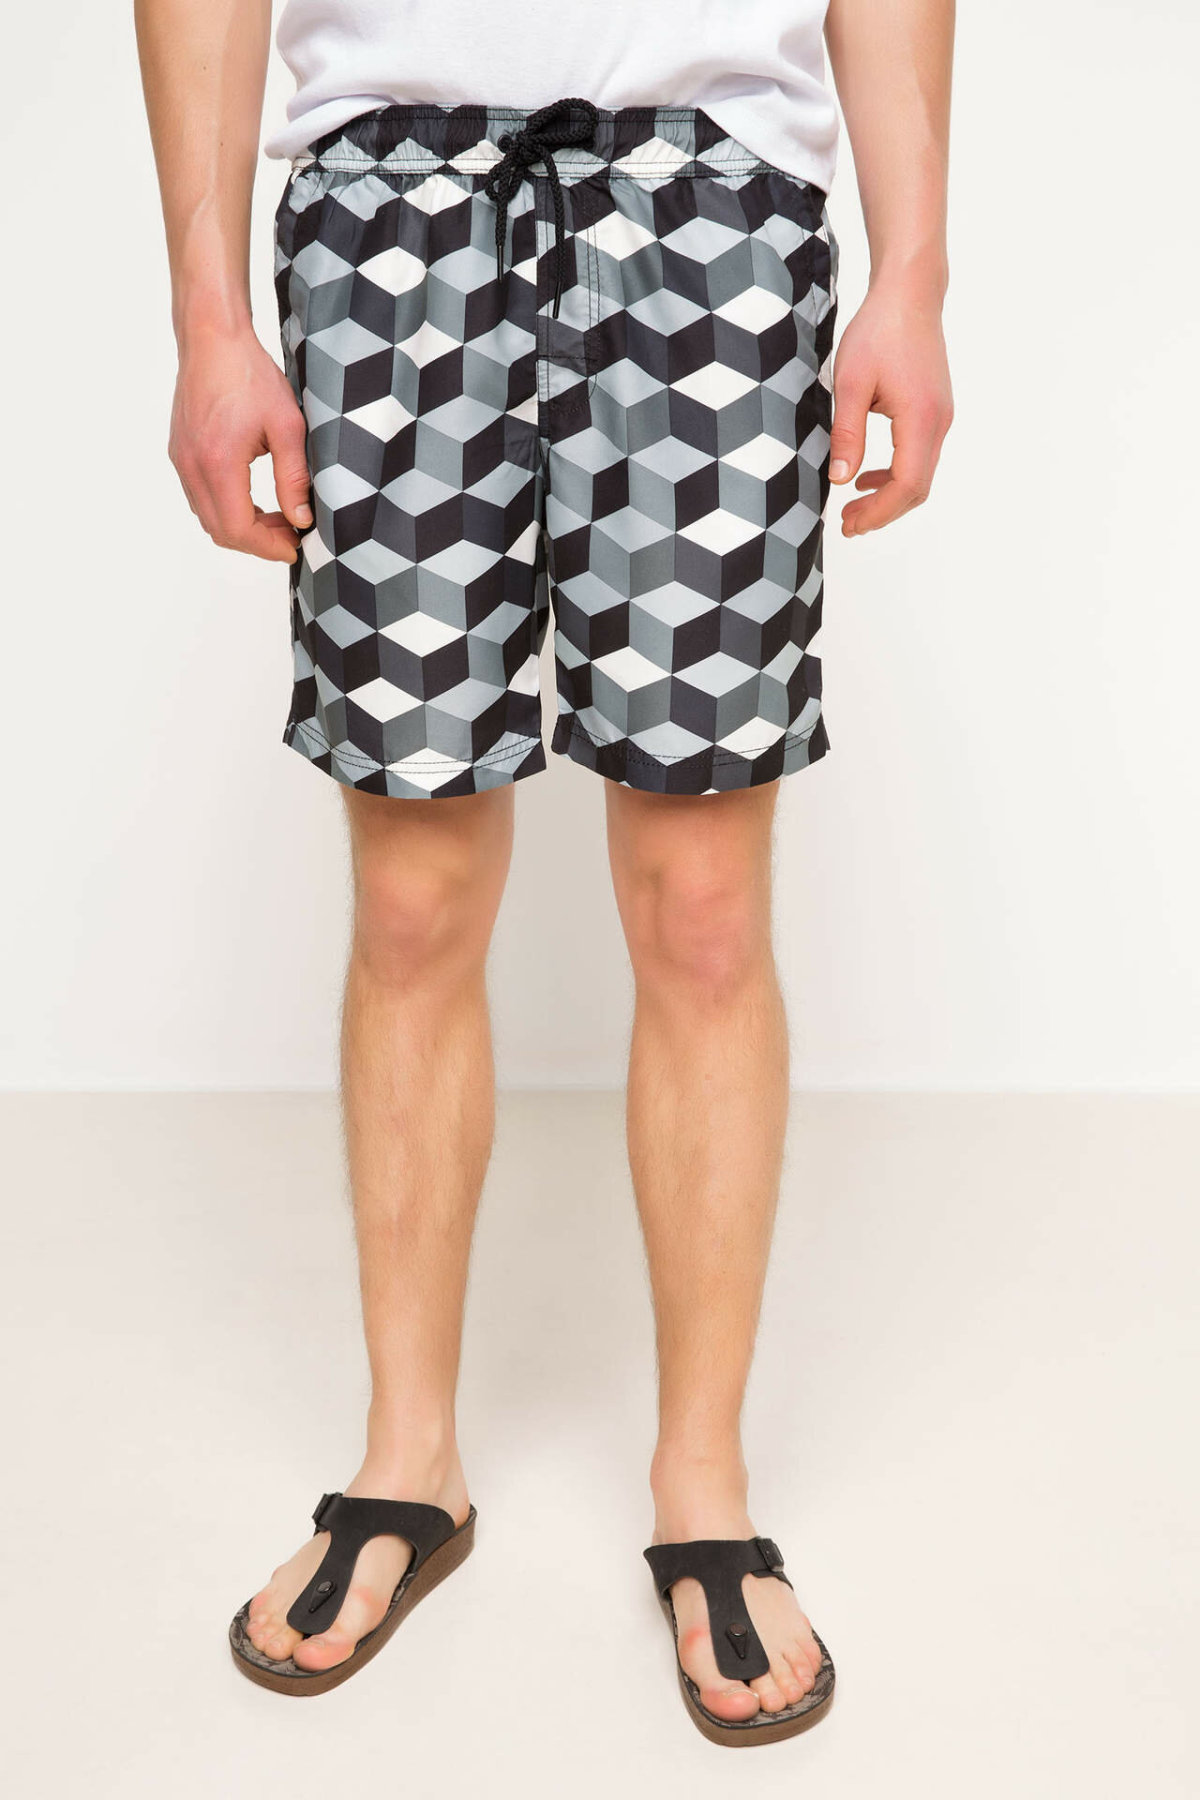 DeFacto Man Summer Casual Shorts Men Black White Plaid Shorts Male Elastic Woven Swimming Short-G7330AZ17HS